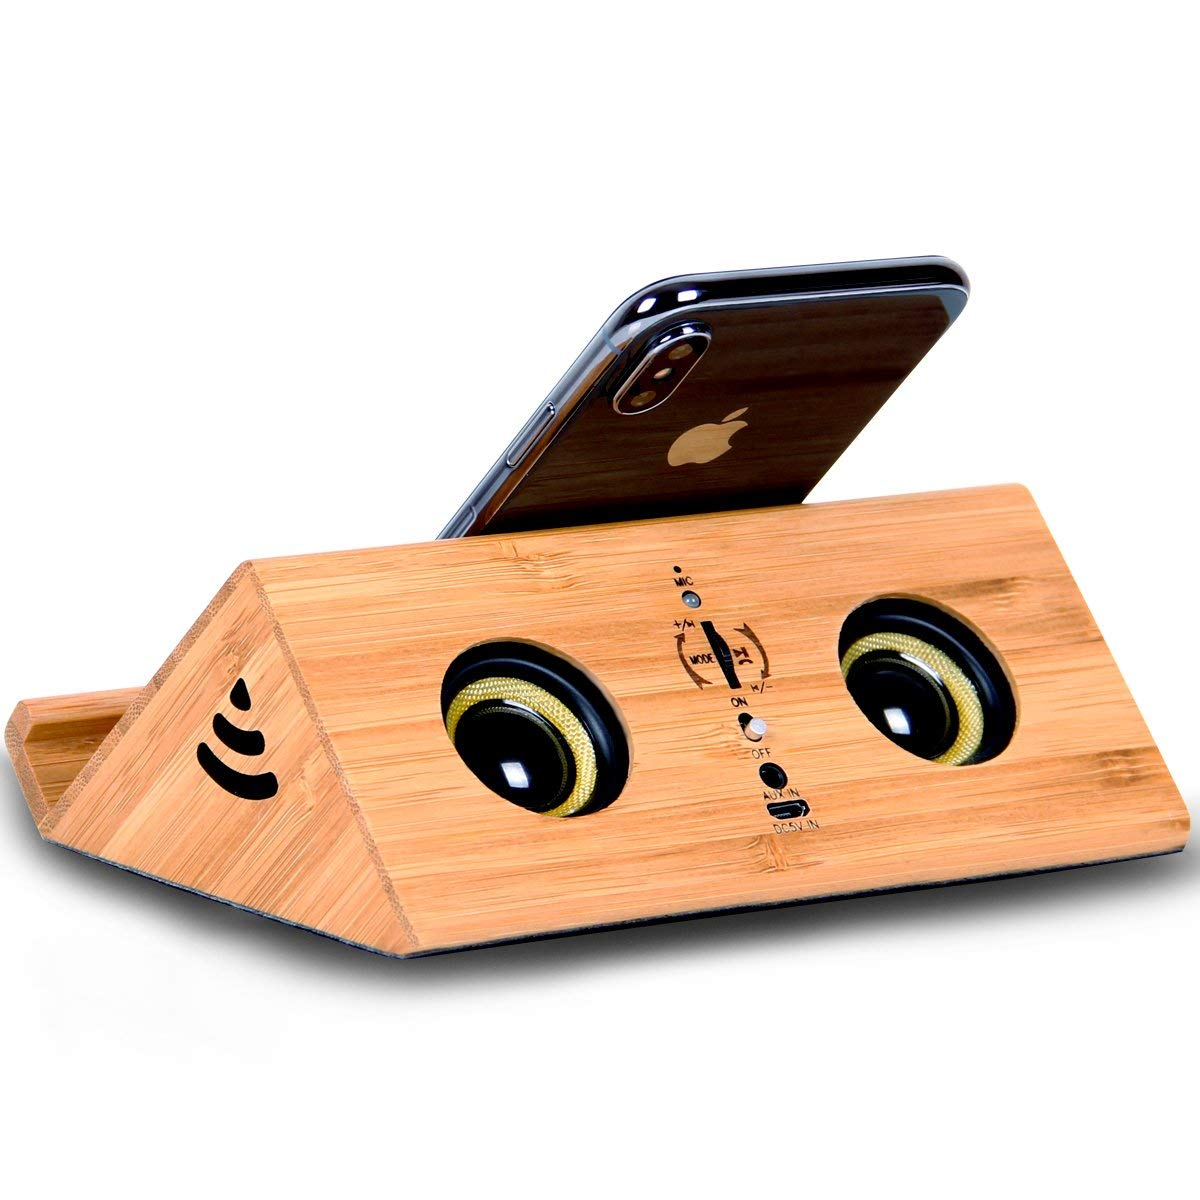 Wooden Bluetooth Speaker Handmade Bamboo HiFi Stereo Subwoofer Wireless Loud Speaker with Phone Stand Holder for Beach Party Shower Speaker